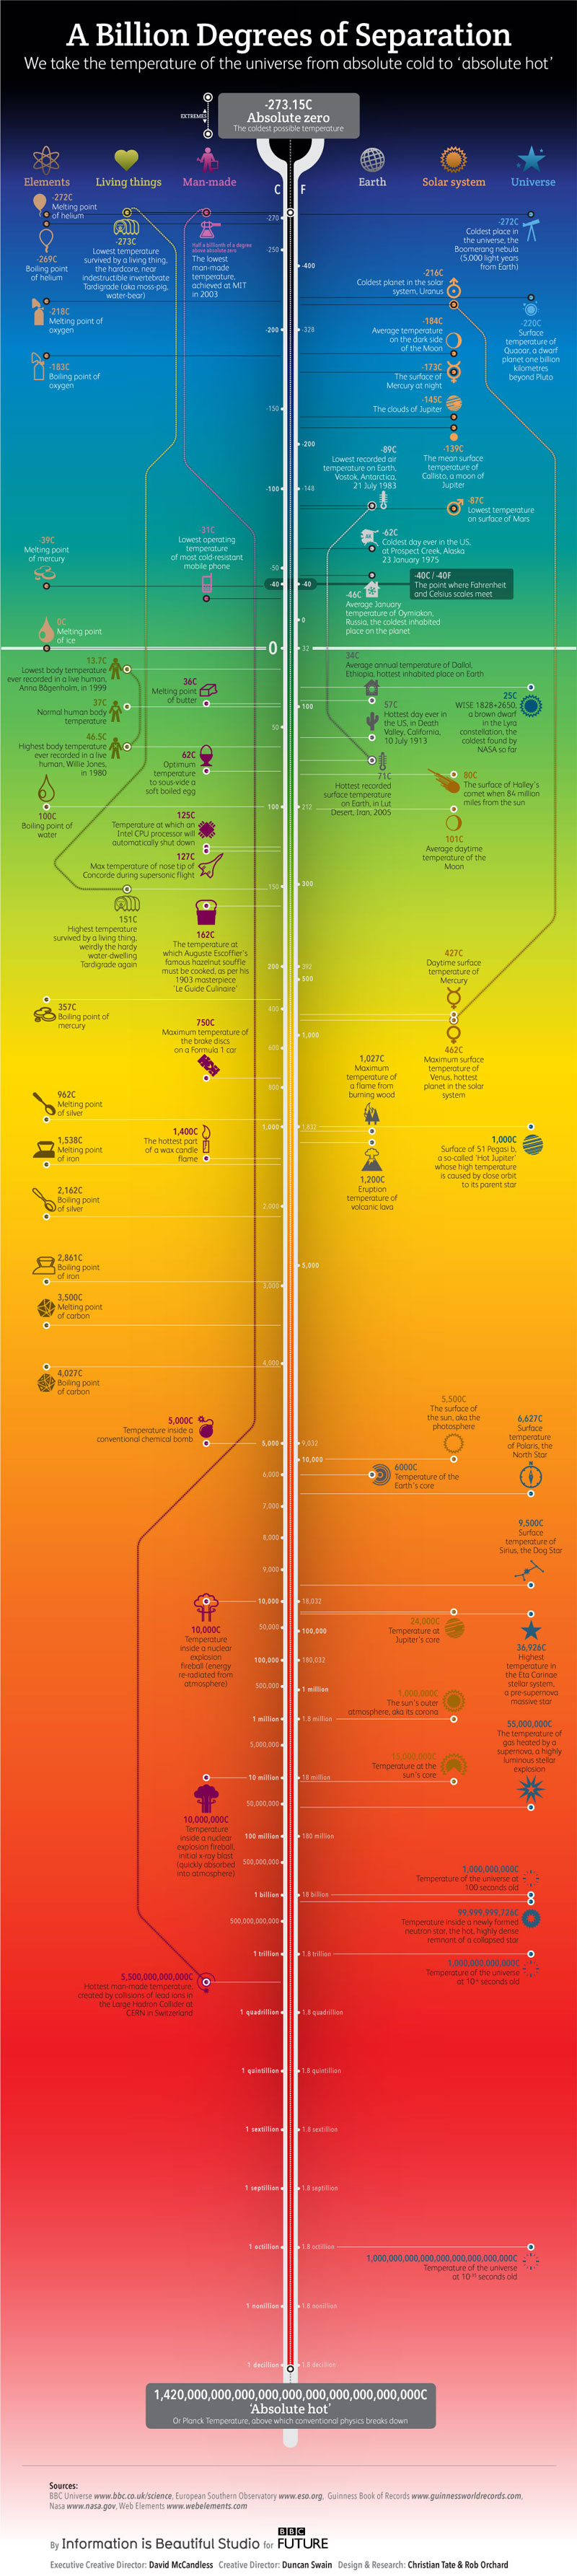 From-Absolute-Zero-To-'Absolute-Hot'-and-the-Billion-Degrees-in-Between-Infographic